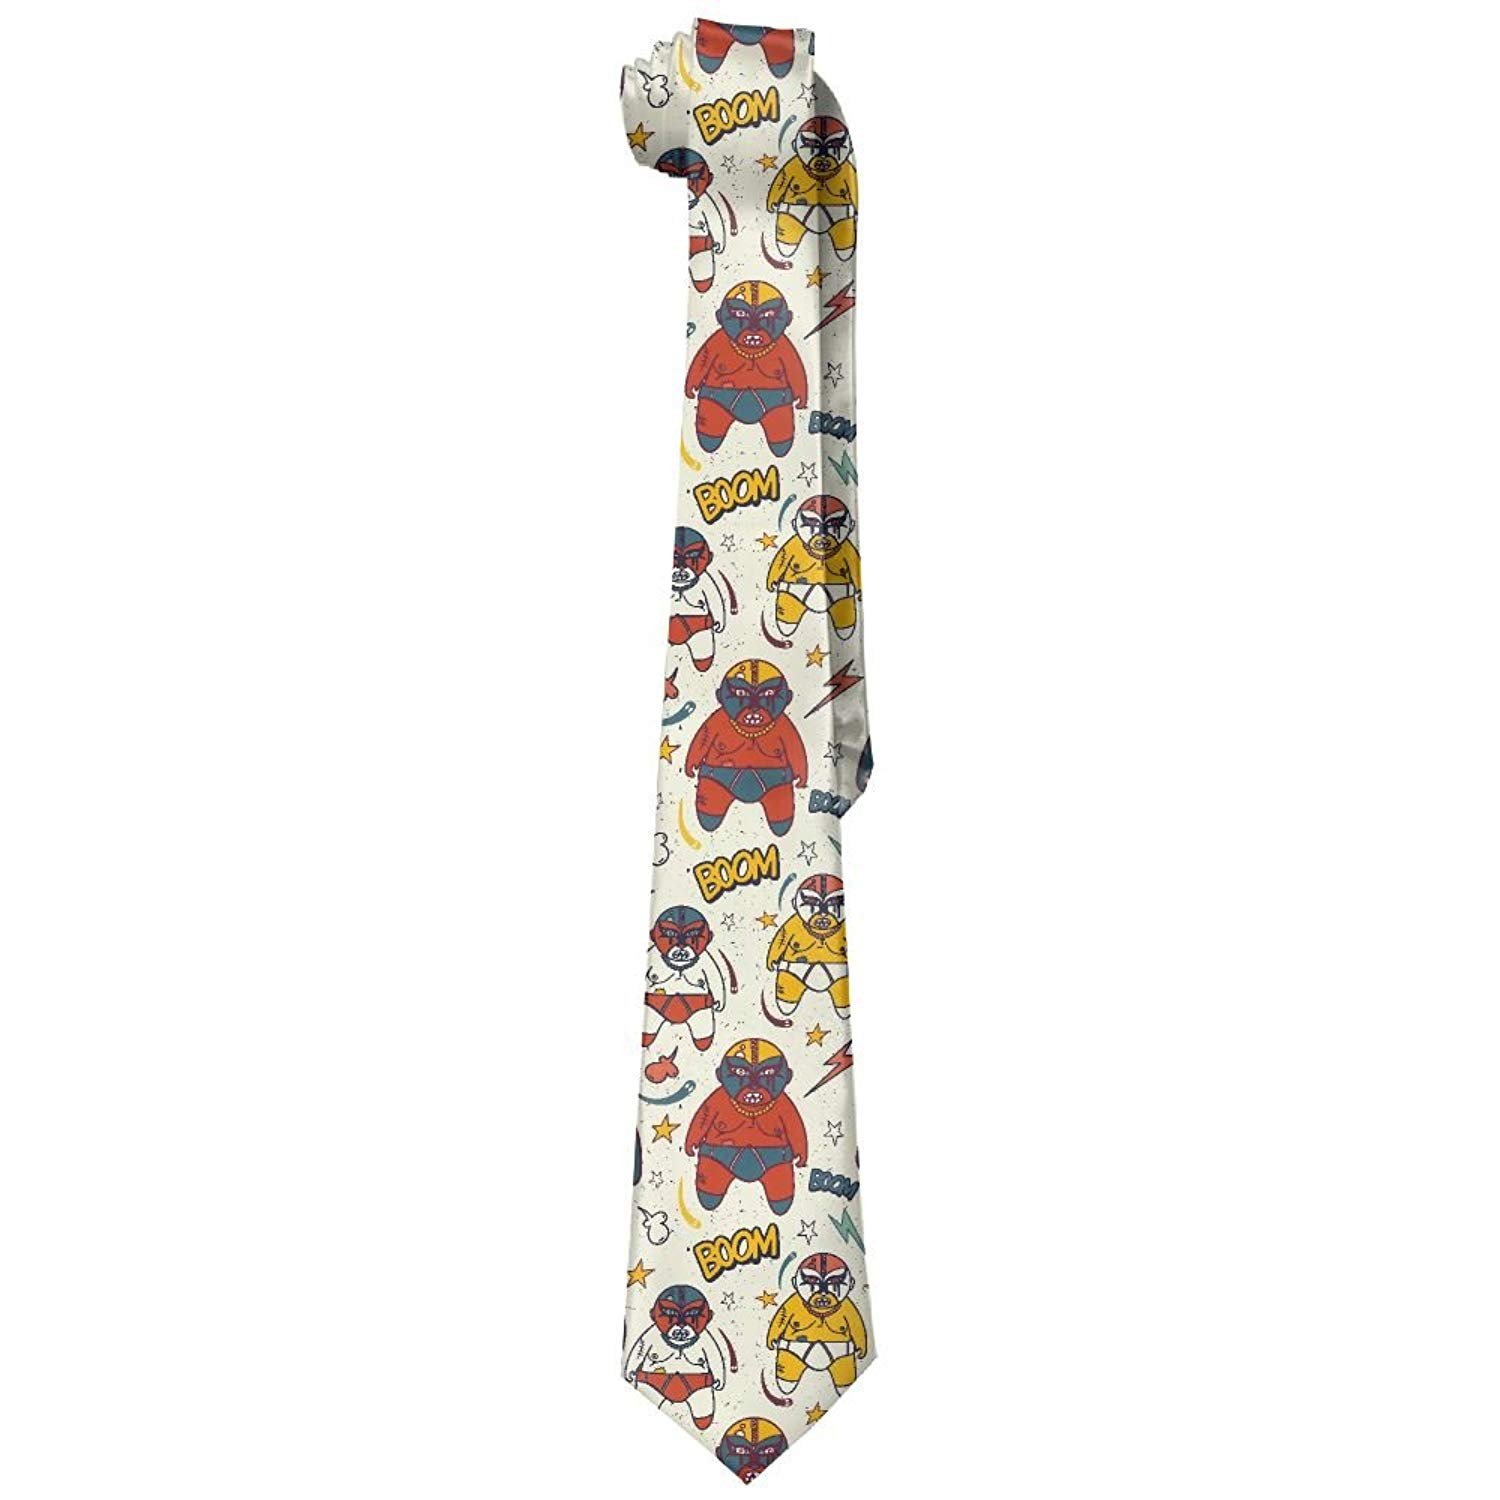 Men's Printed Floral Neck Tie Trust The Work You Put In Wrestling Coloring